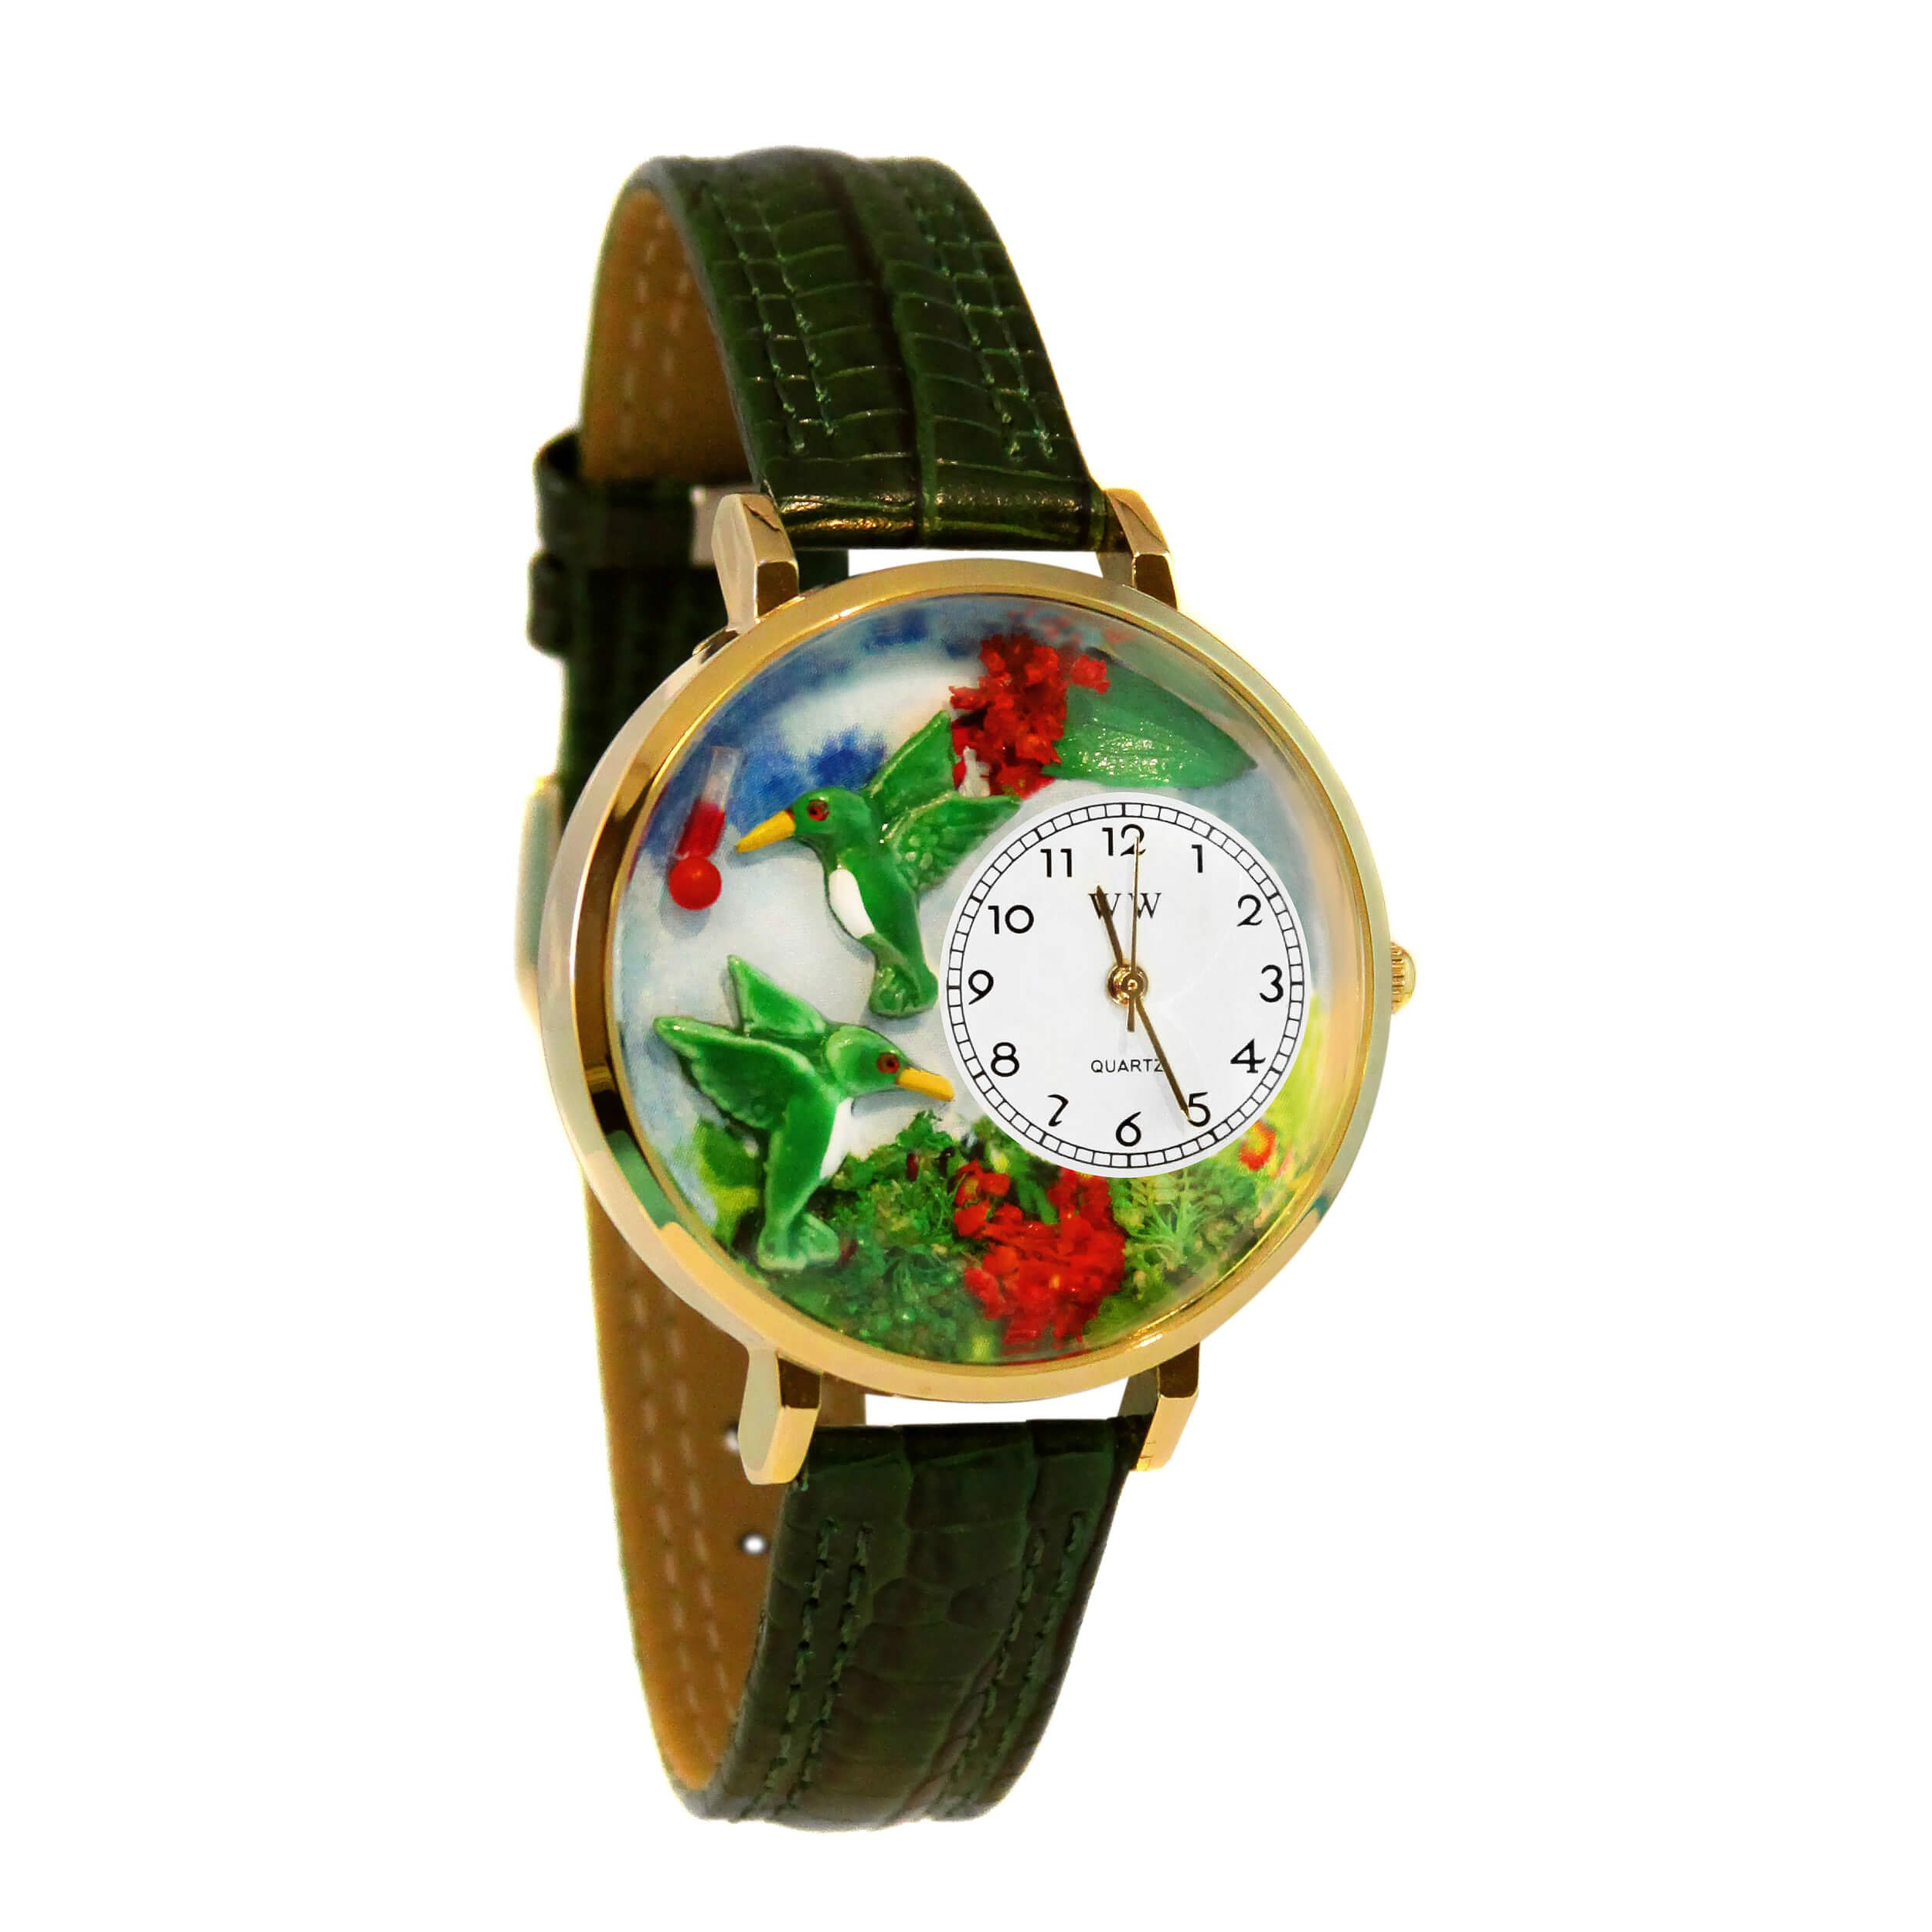 Whimsical Watches Women's G1210003 Hummingbirds Green Leather Watch